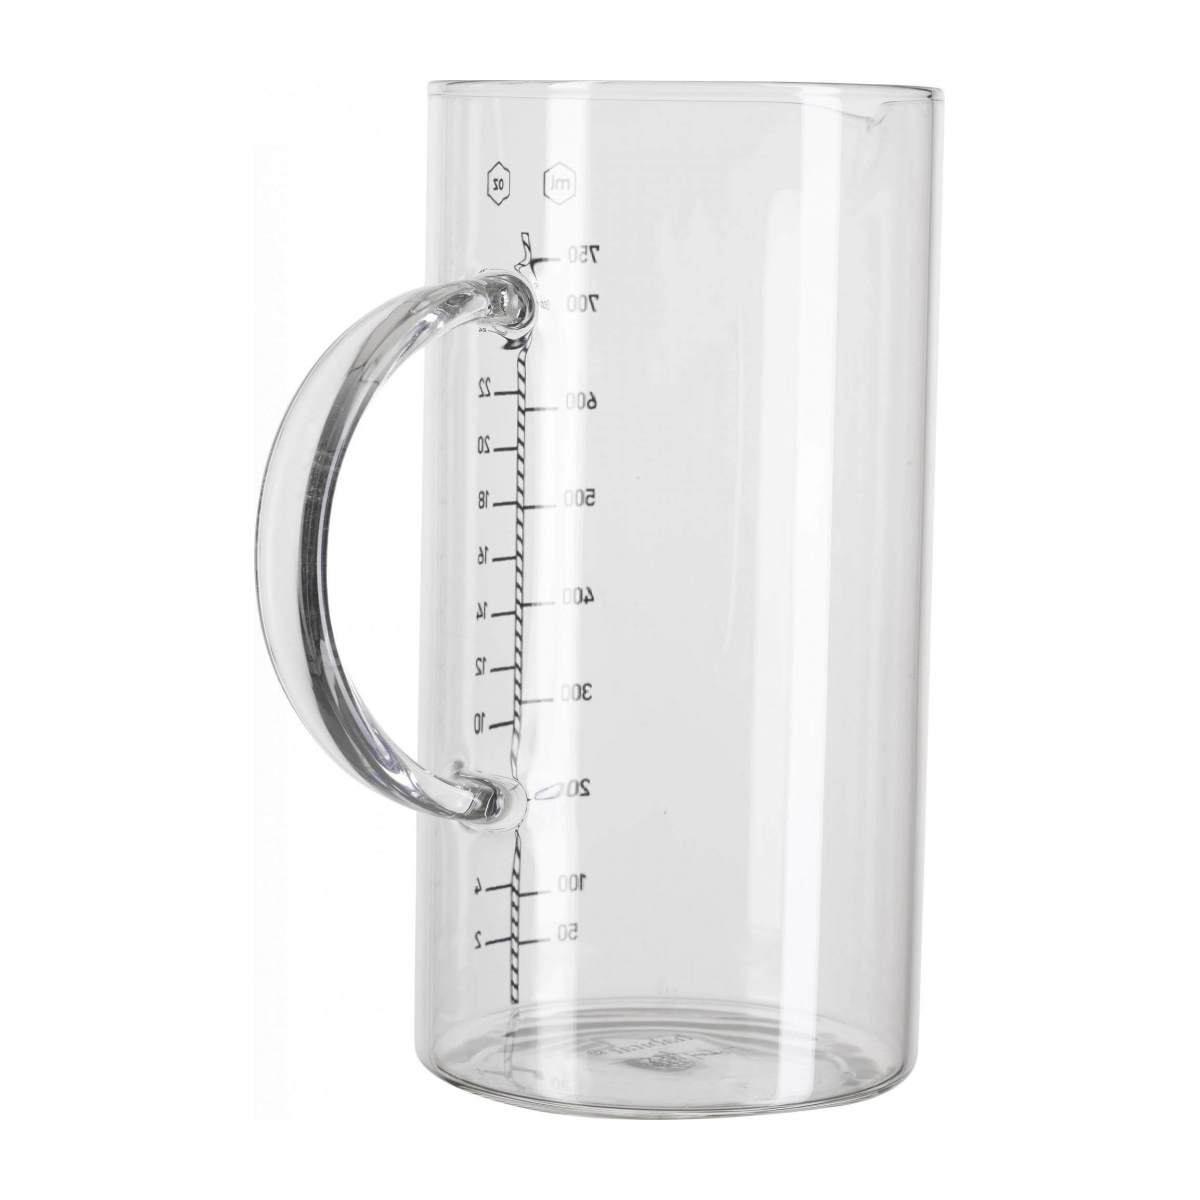 Measuring glass  n°8